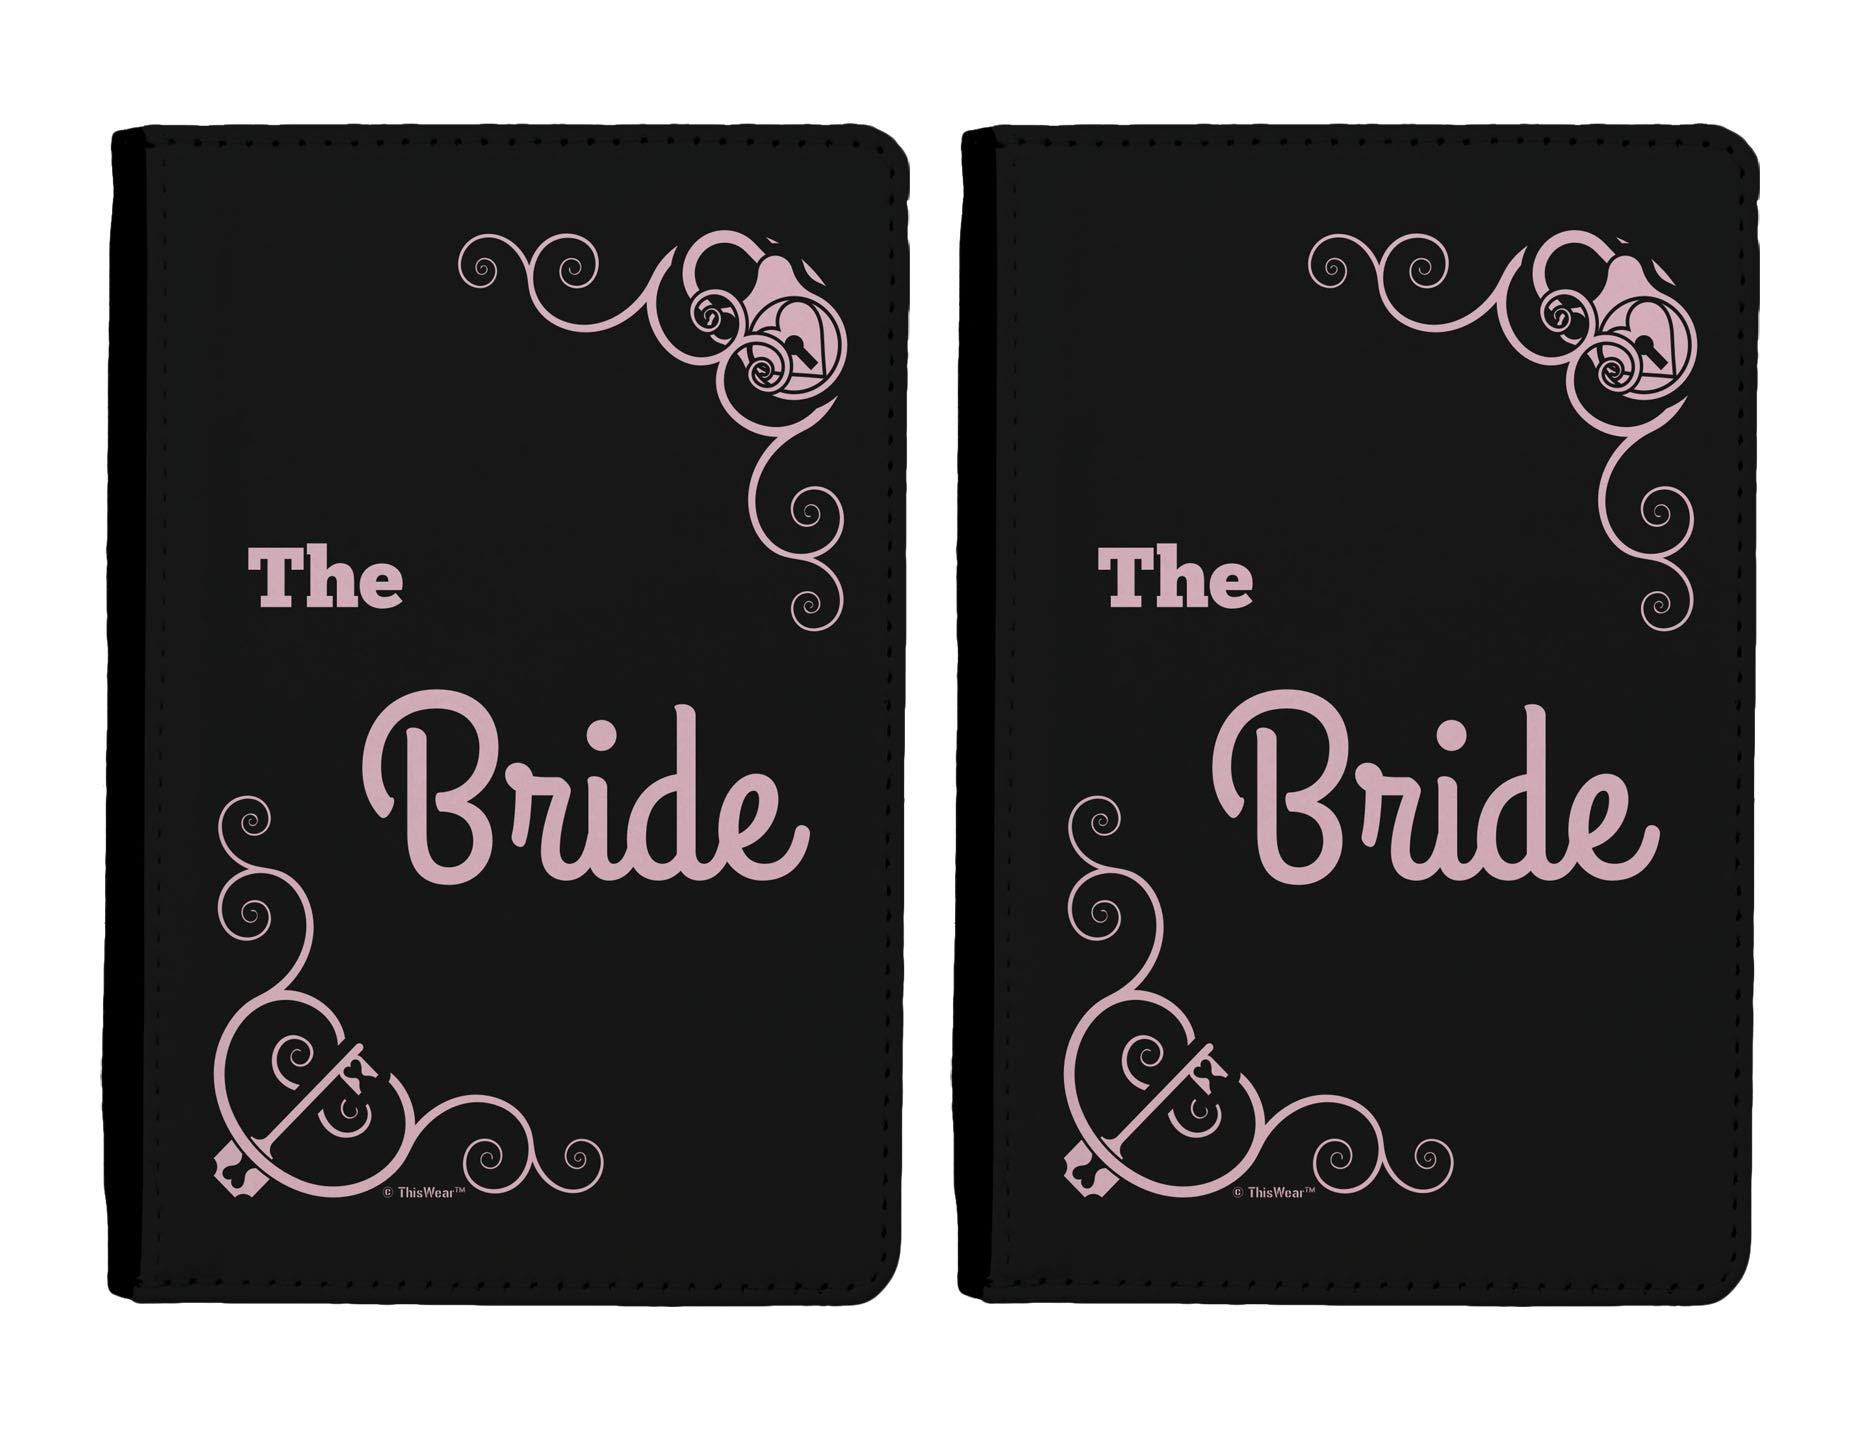 Destination Wedding Gift Bride Passport Holder 2-pack Full Color Passport Covers Wallet Black & Pink